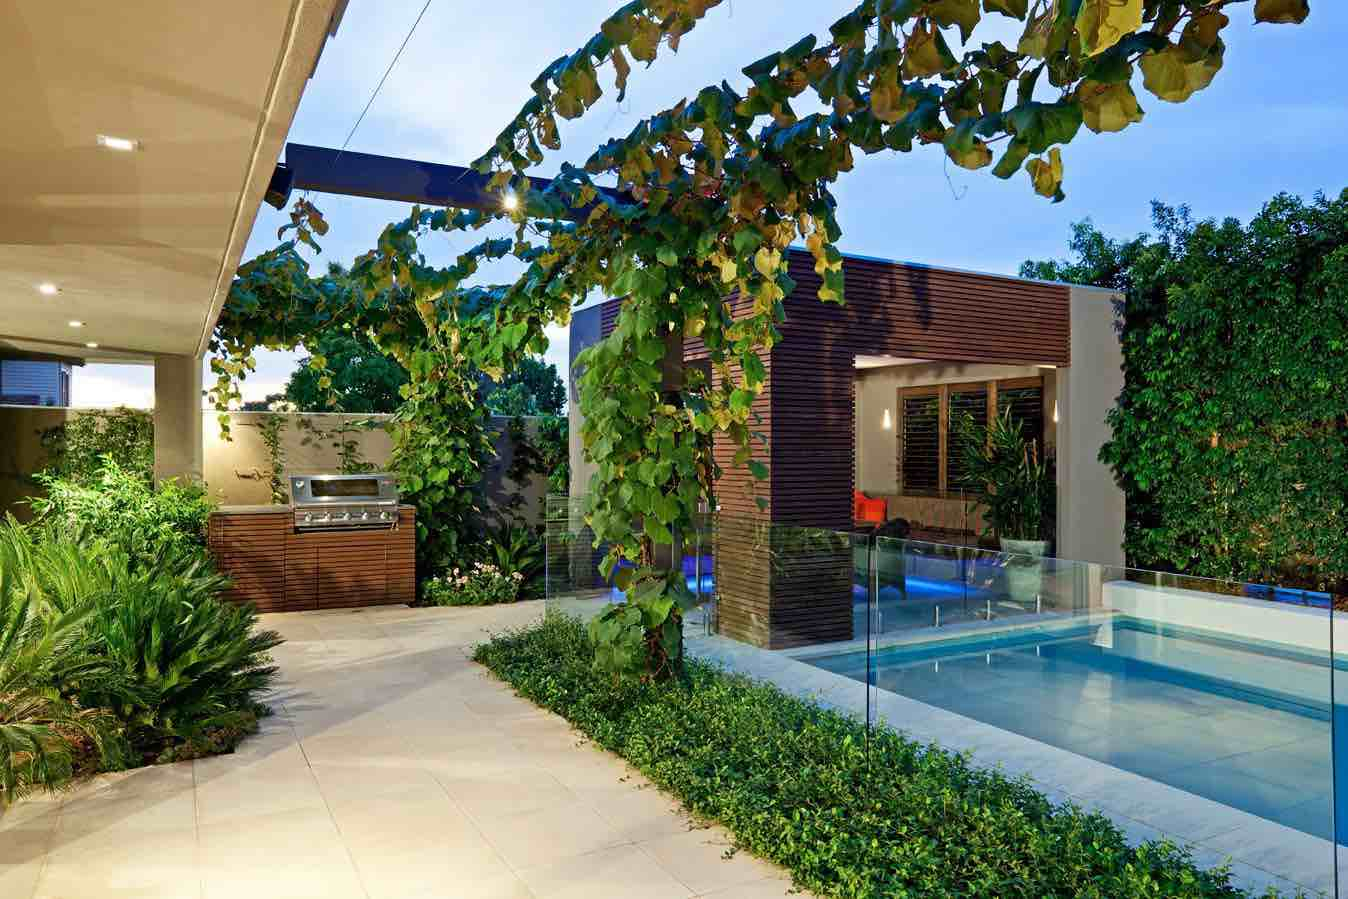 41 backyard design ideas for small yards worthminer for Yard design ideas